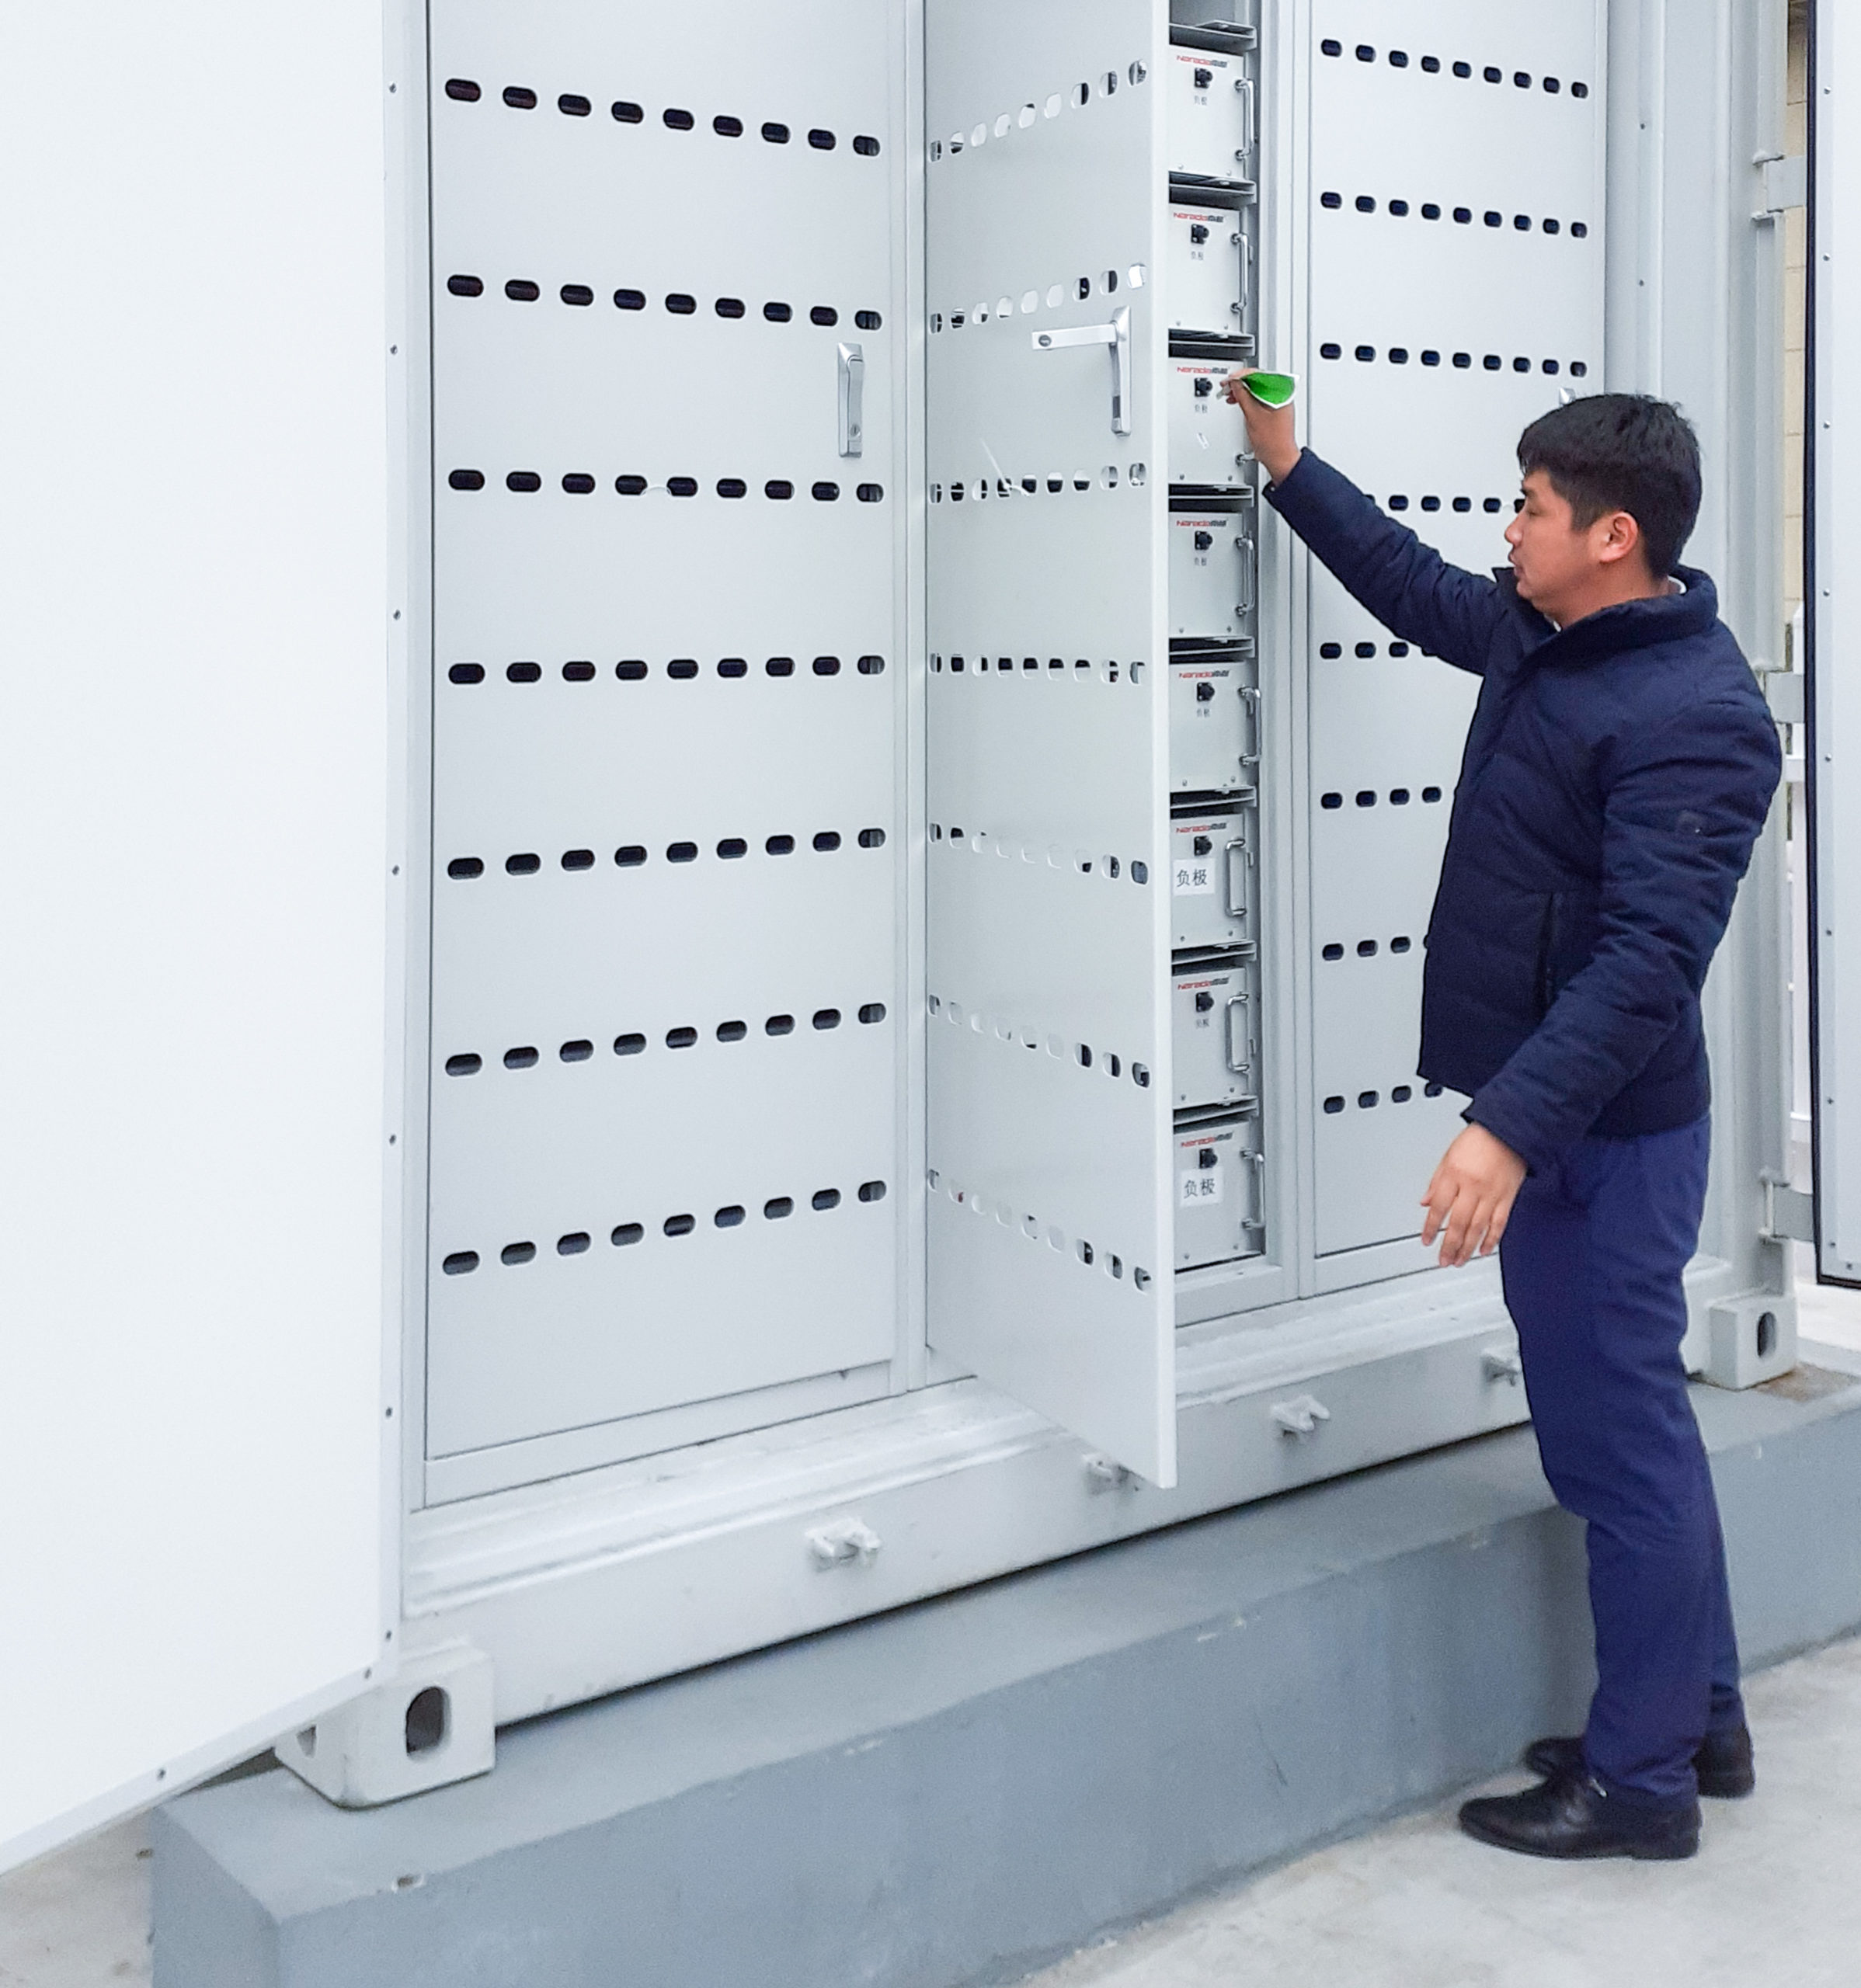 Inspections of the completely assembled energy storage system is